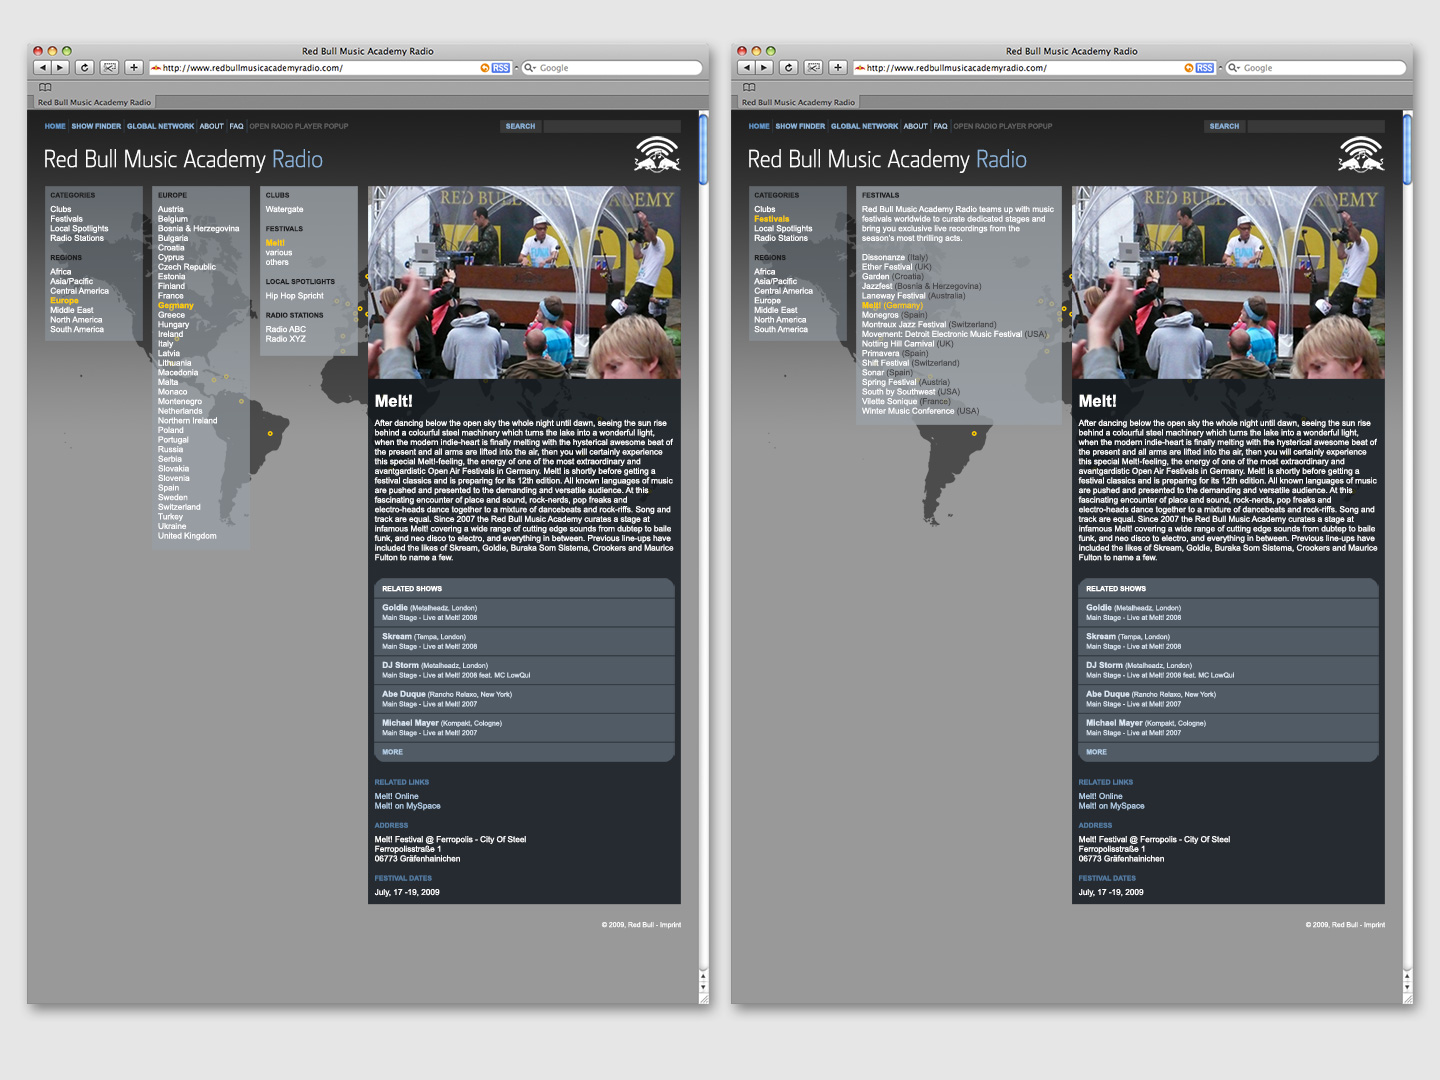 RBMA Radio 2009 · Mockups (Global Network · Navigation)